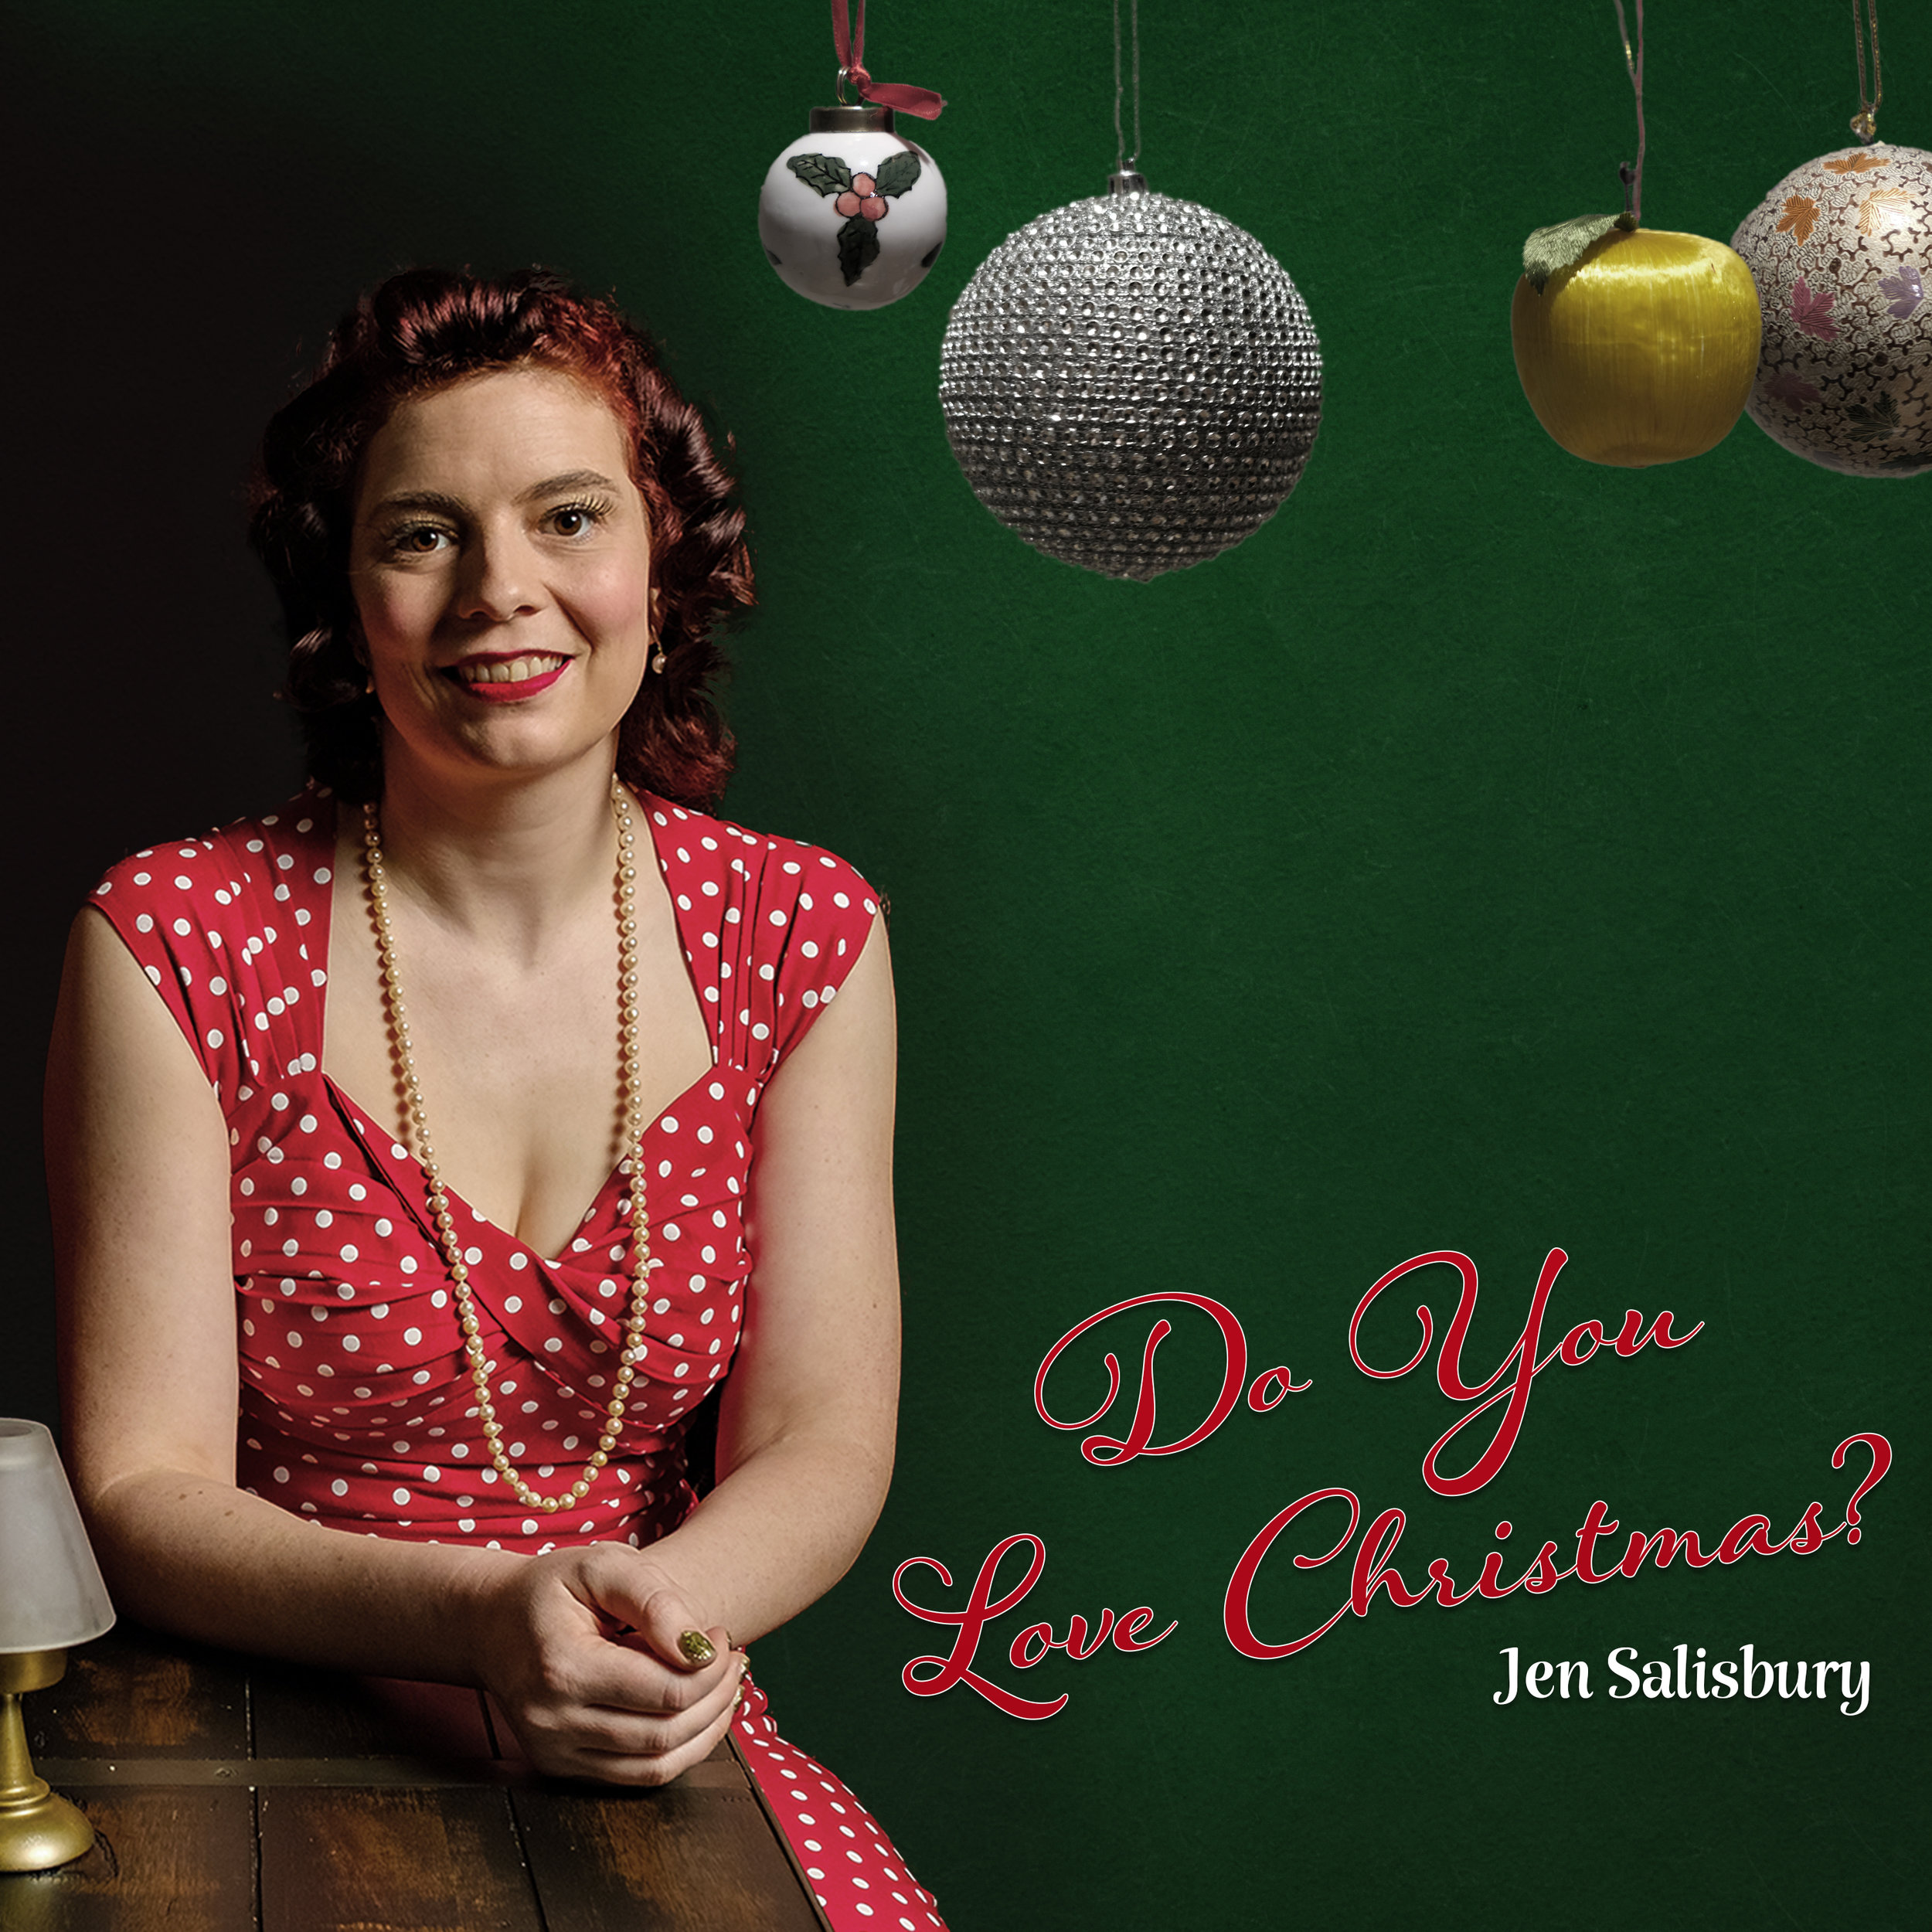 Download the new Christmas EP - Buy now